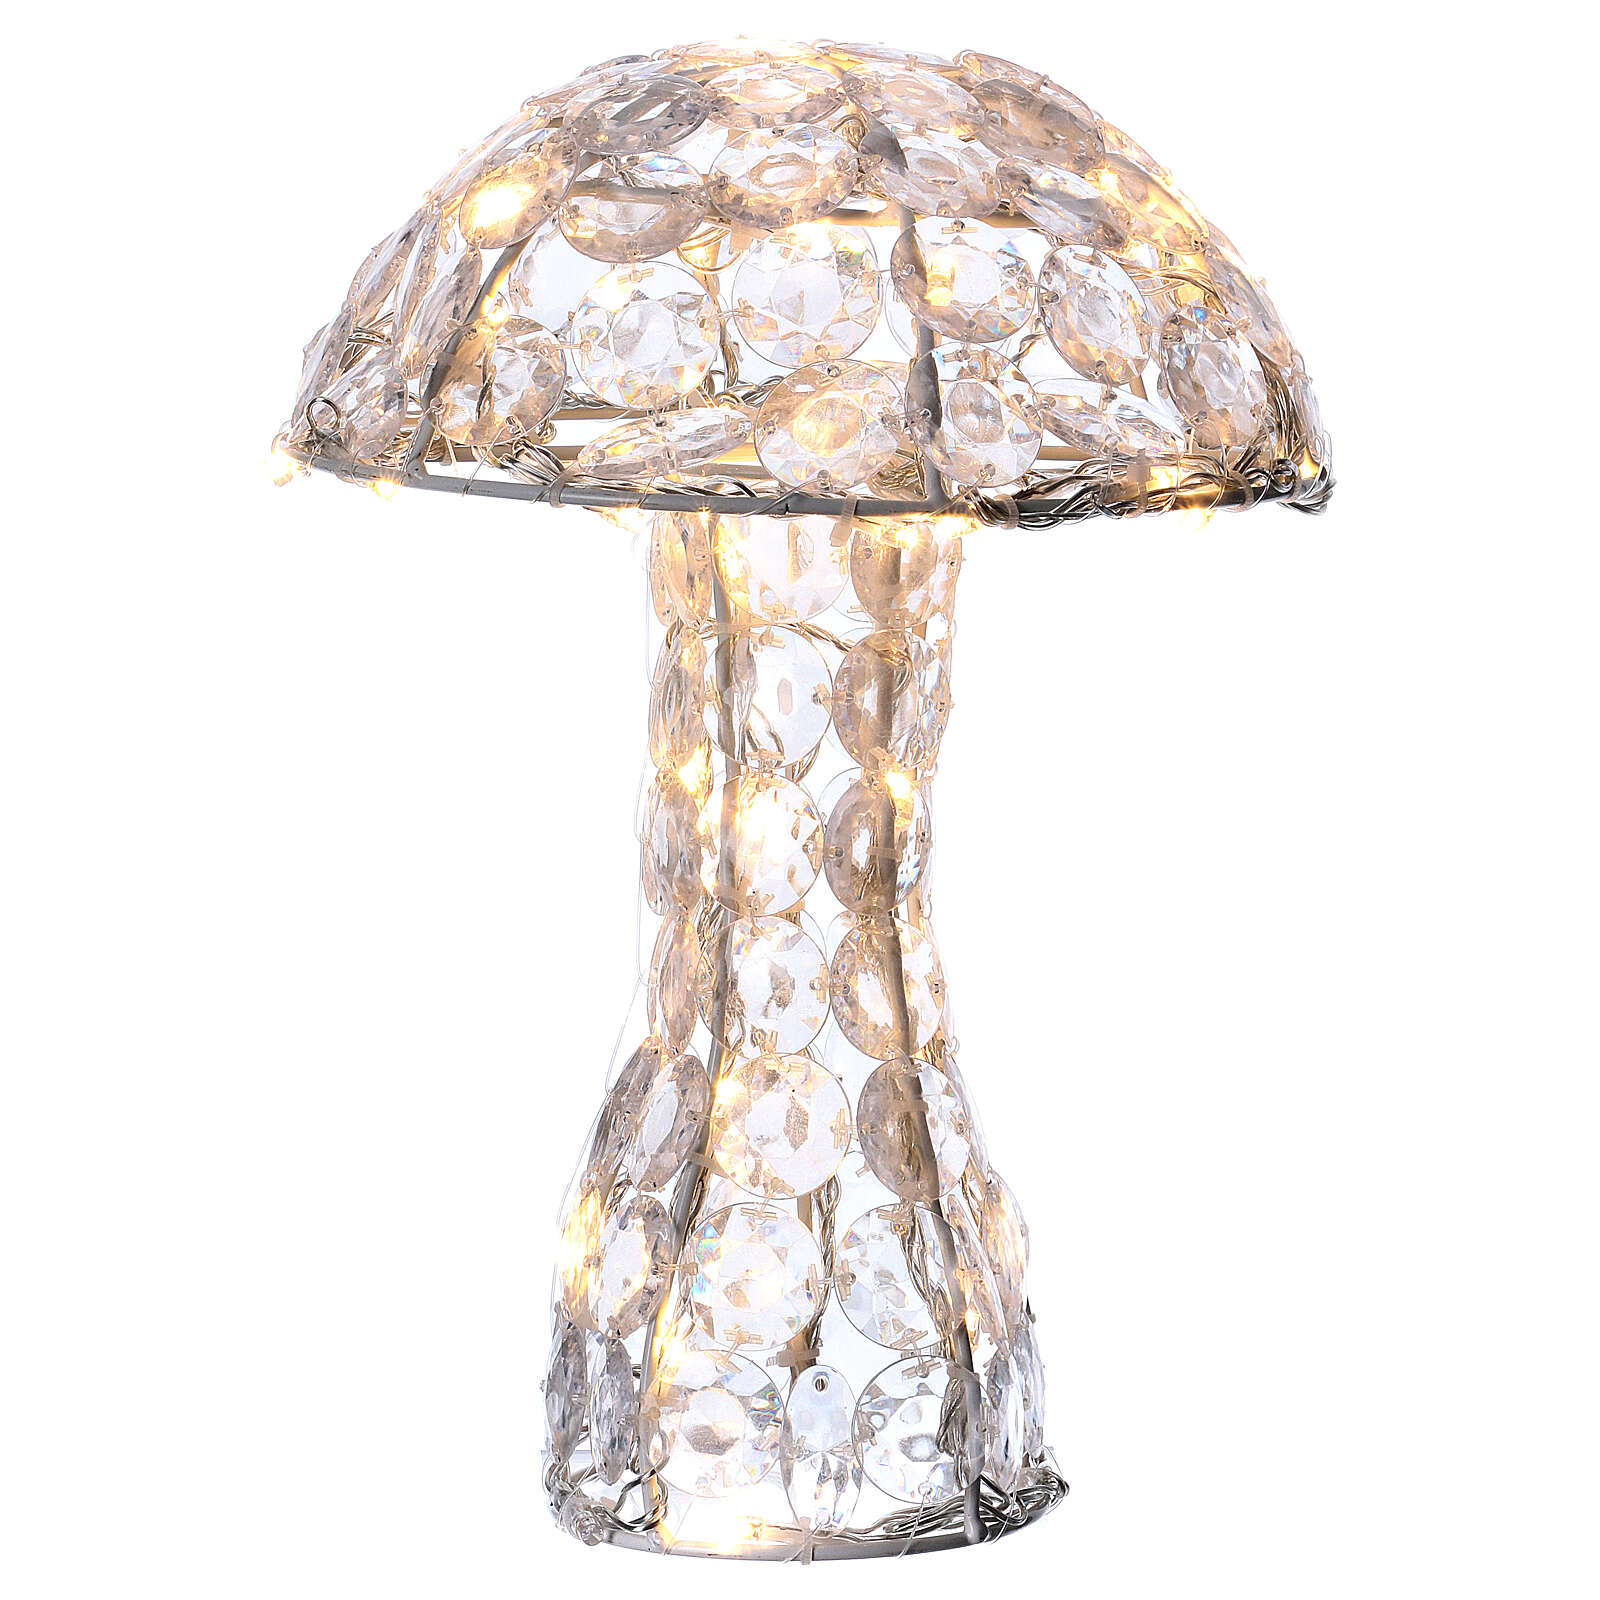 Illuminated Mushroom 65 diamond LED h 30 cm indoor outdoor ice white 3